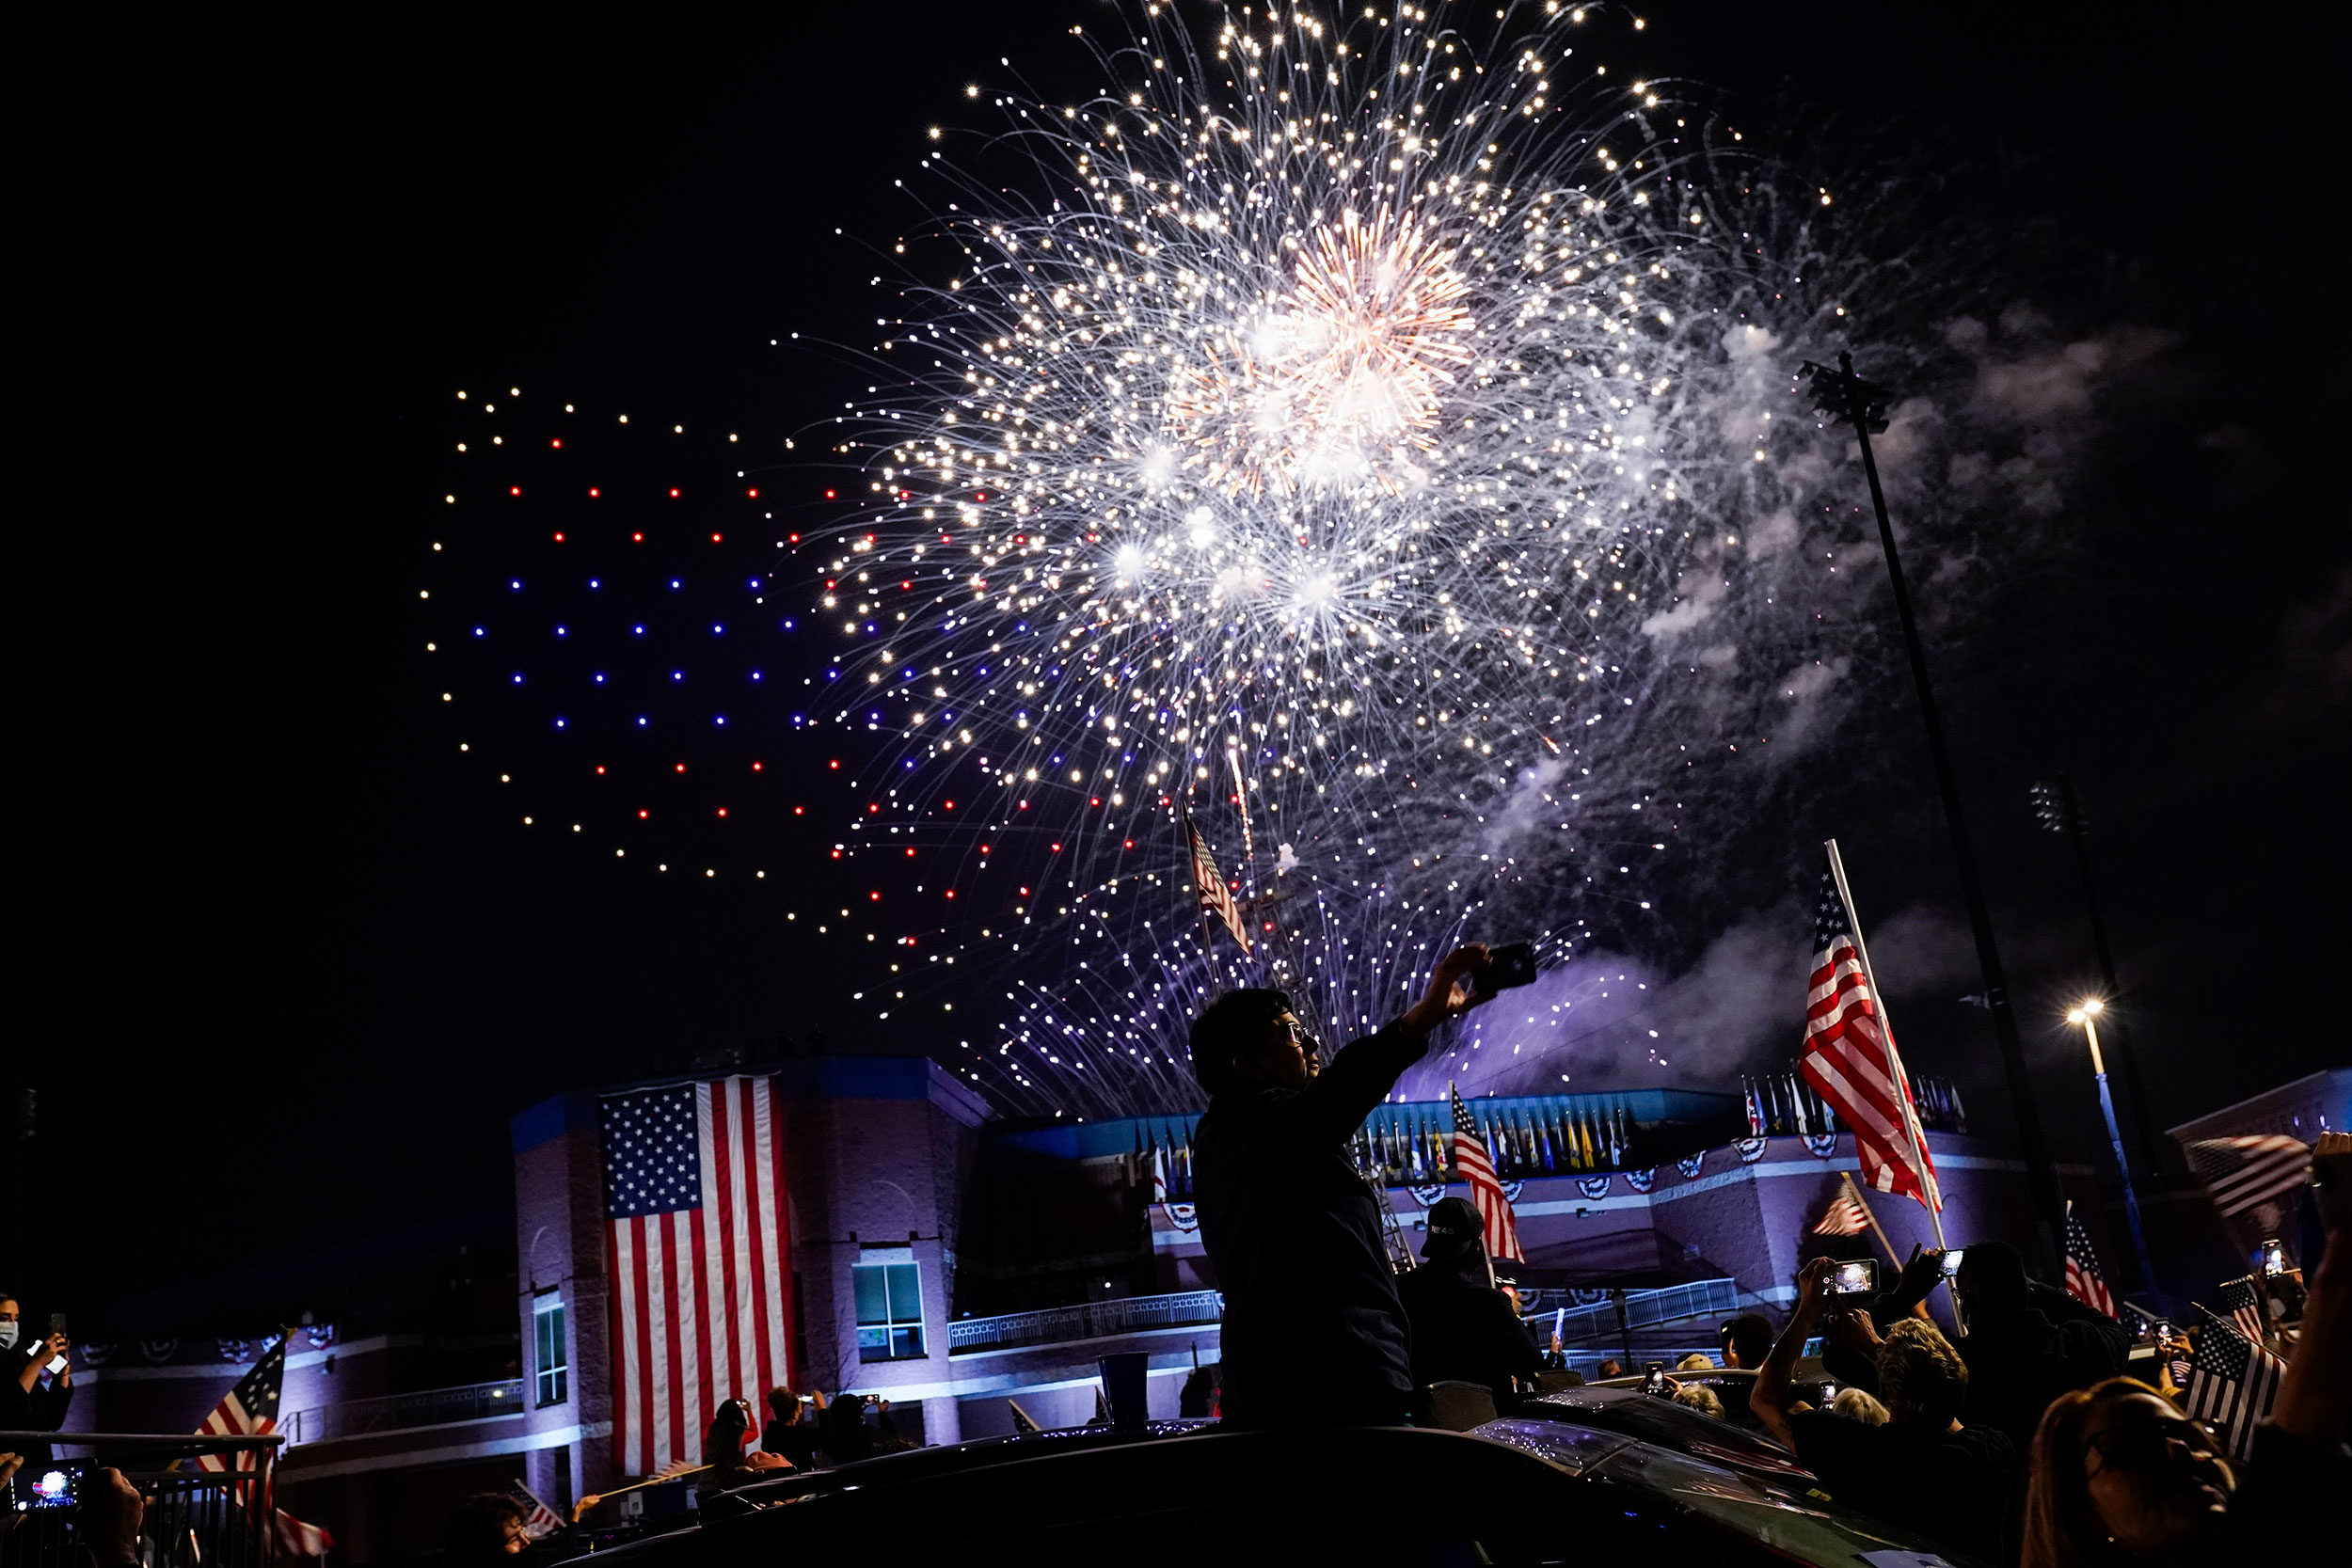 Fireworks go off after an event by President-elect Joe Biden on November 7 in Wilmington, Delaware.